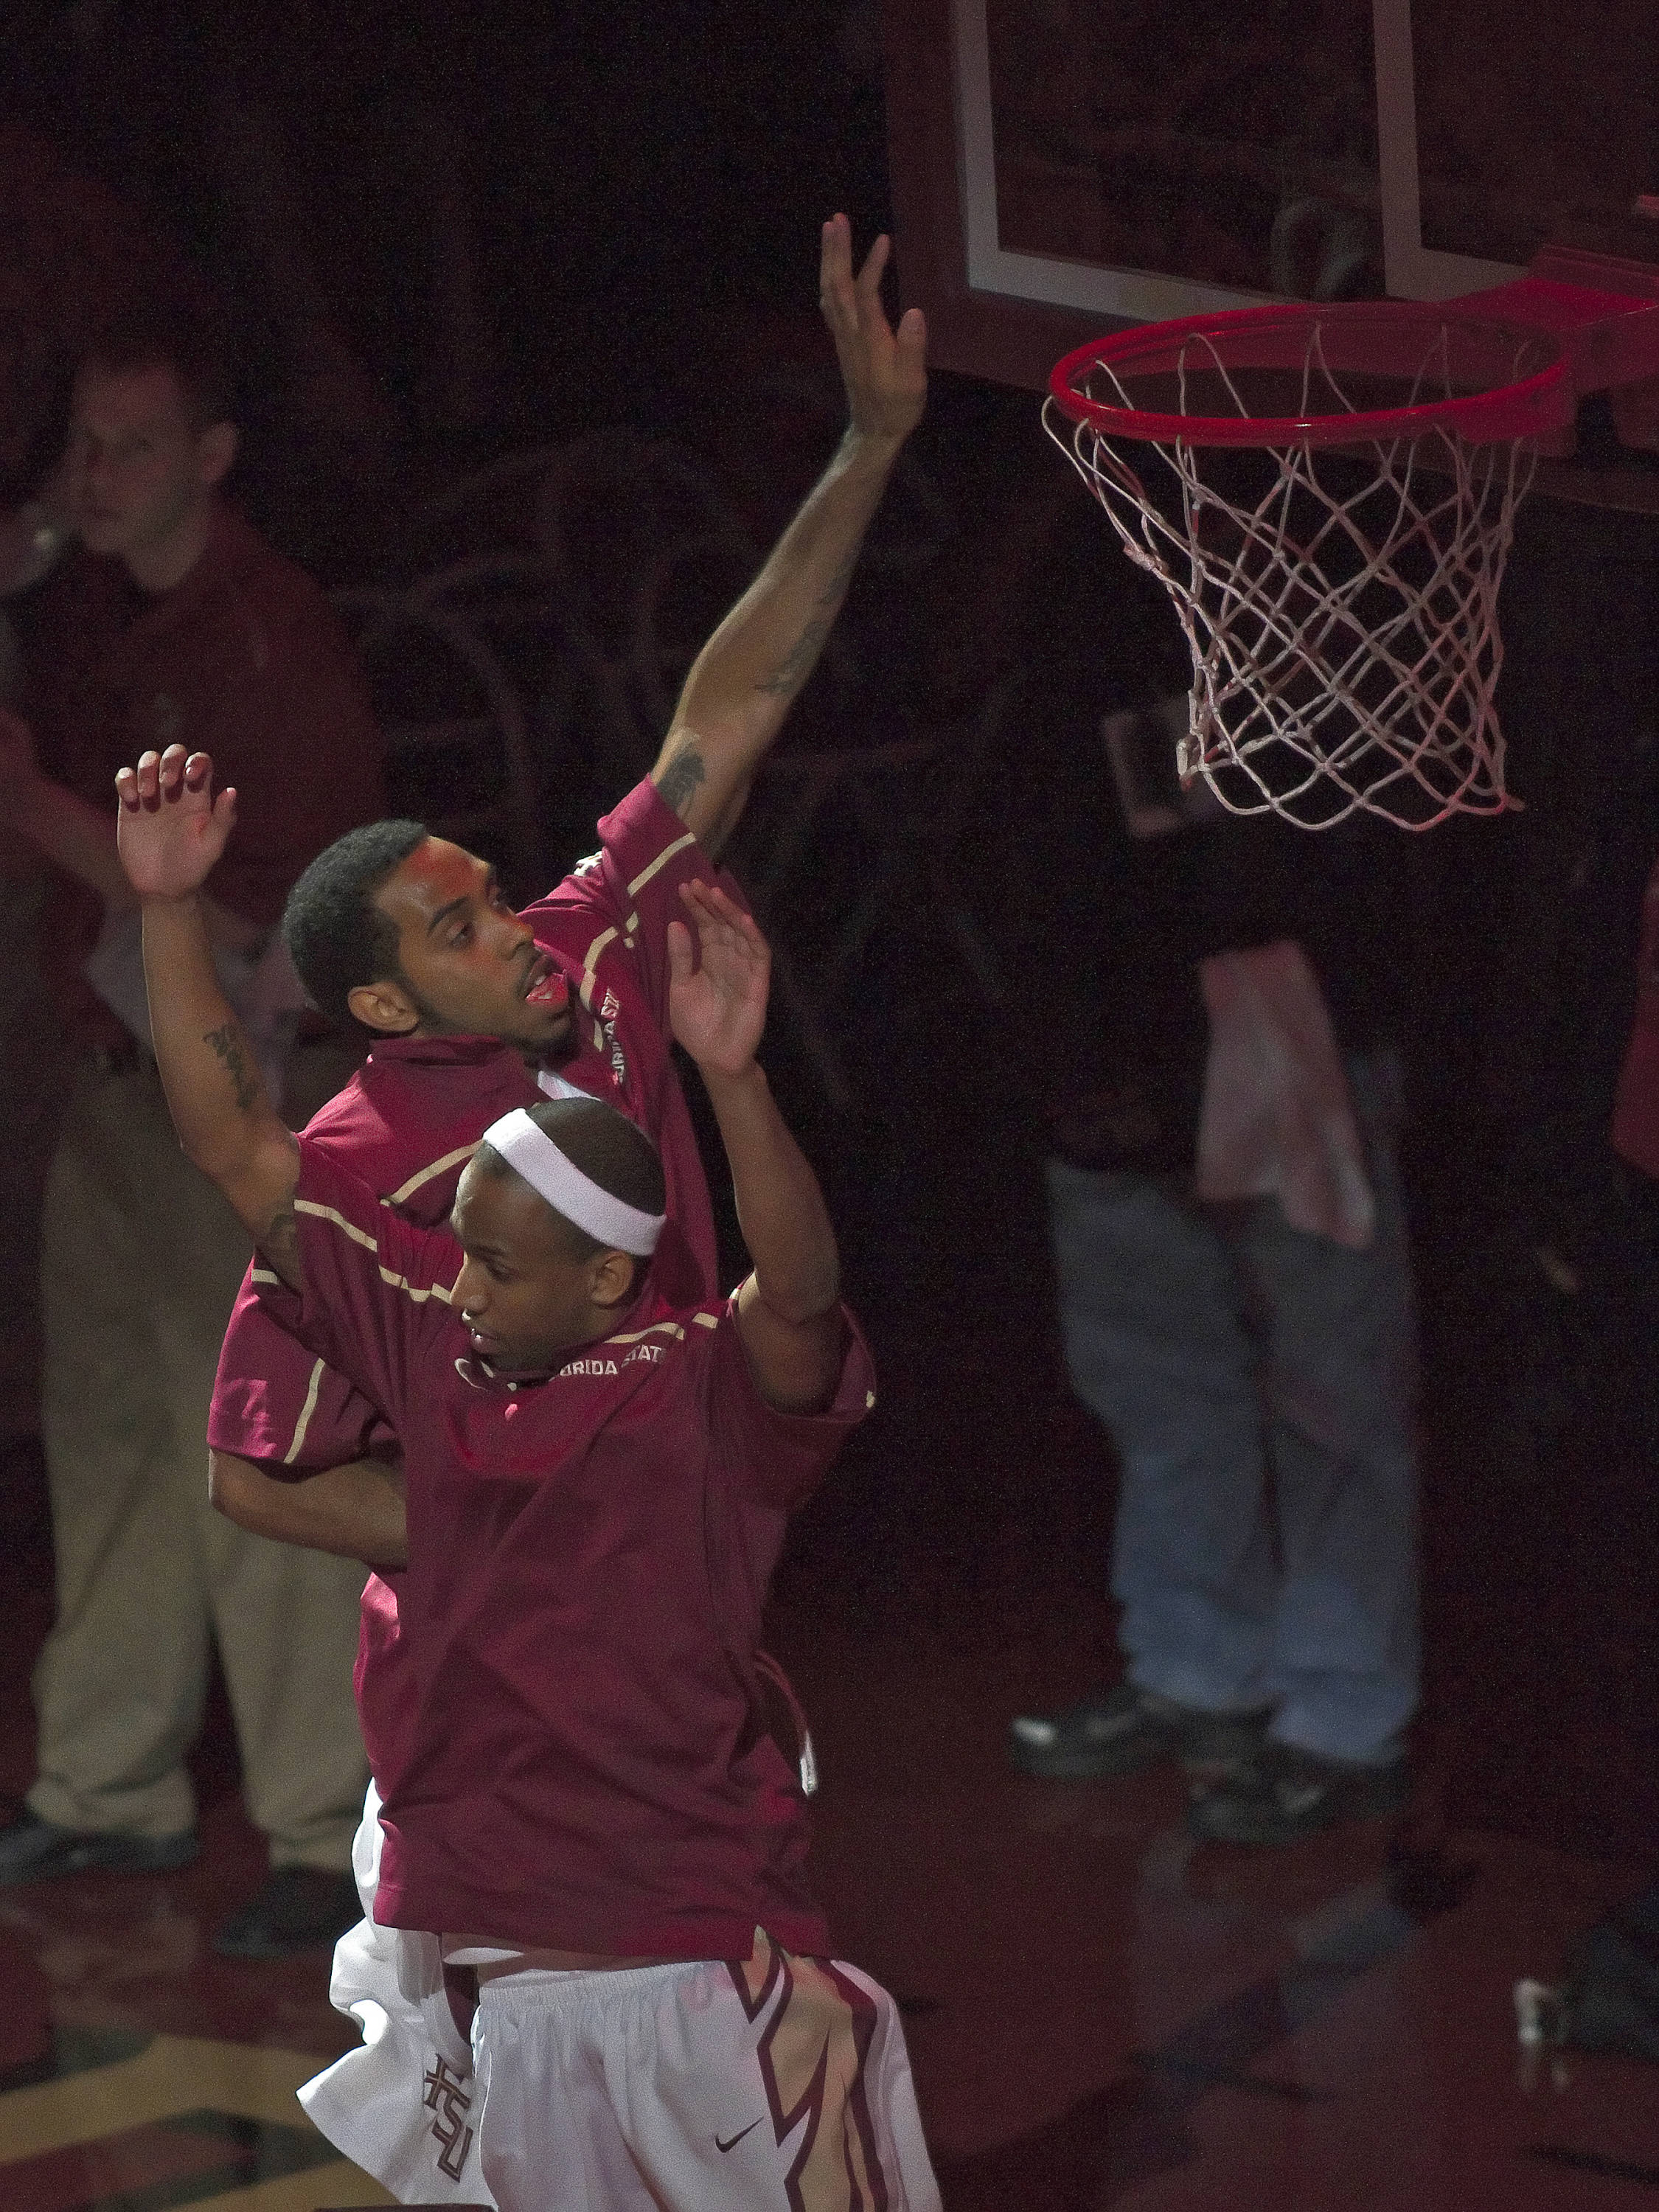 FSU vs Boston College - 01/22/11 - Derwin Kitchen (22), A.J. Yawn (2)